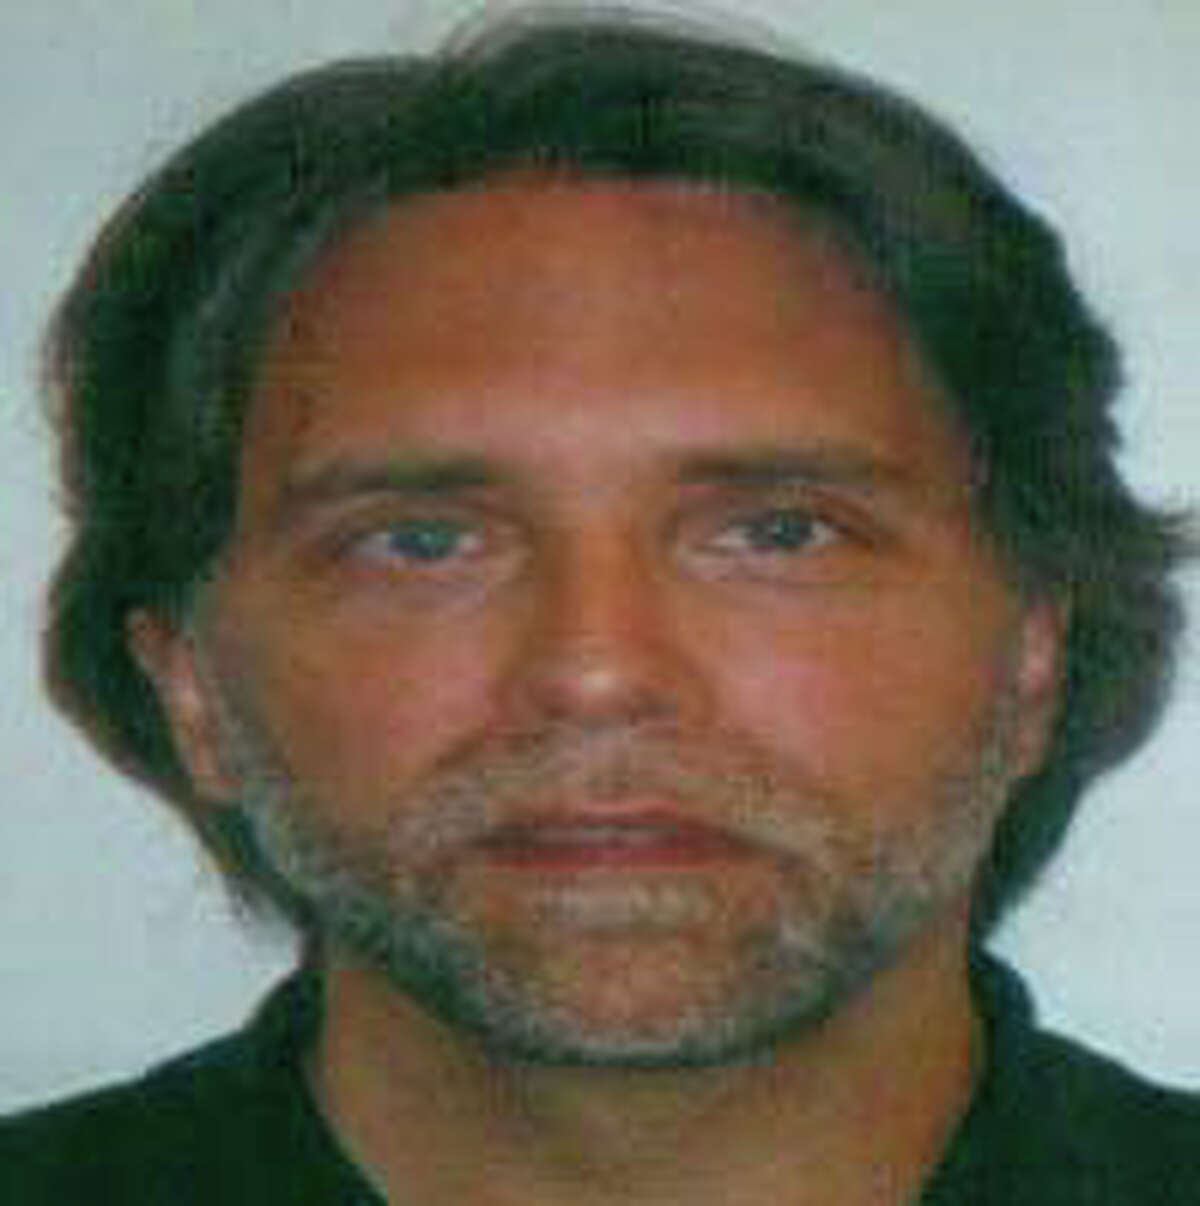 This photo of Keith Raniere was submitted as evidence in his federal trial. (U.S. Department of Justice)